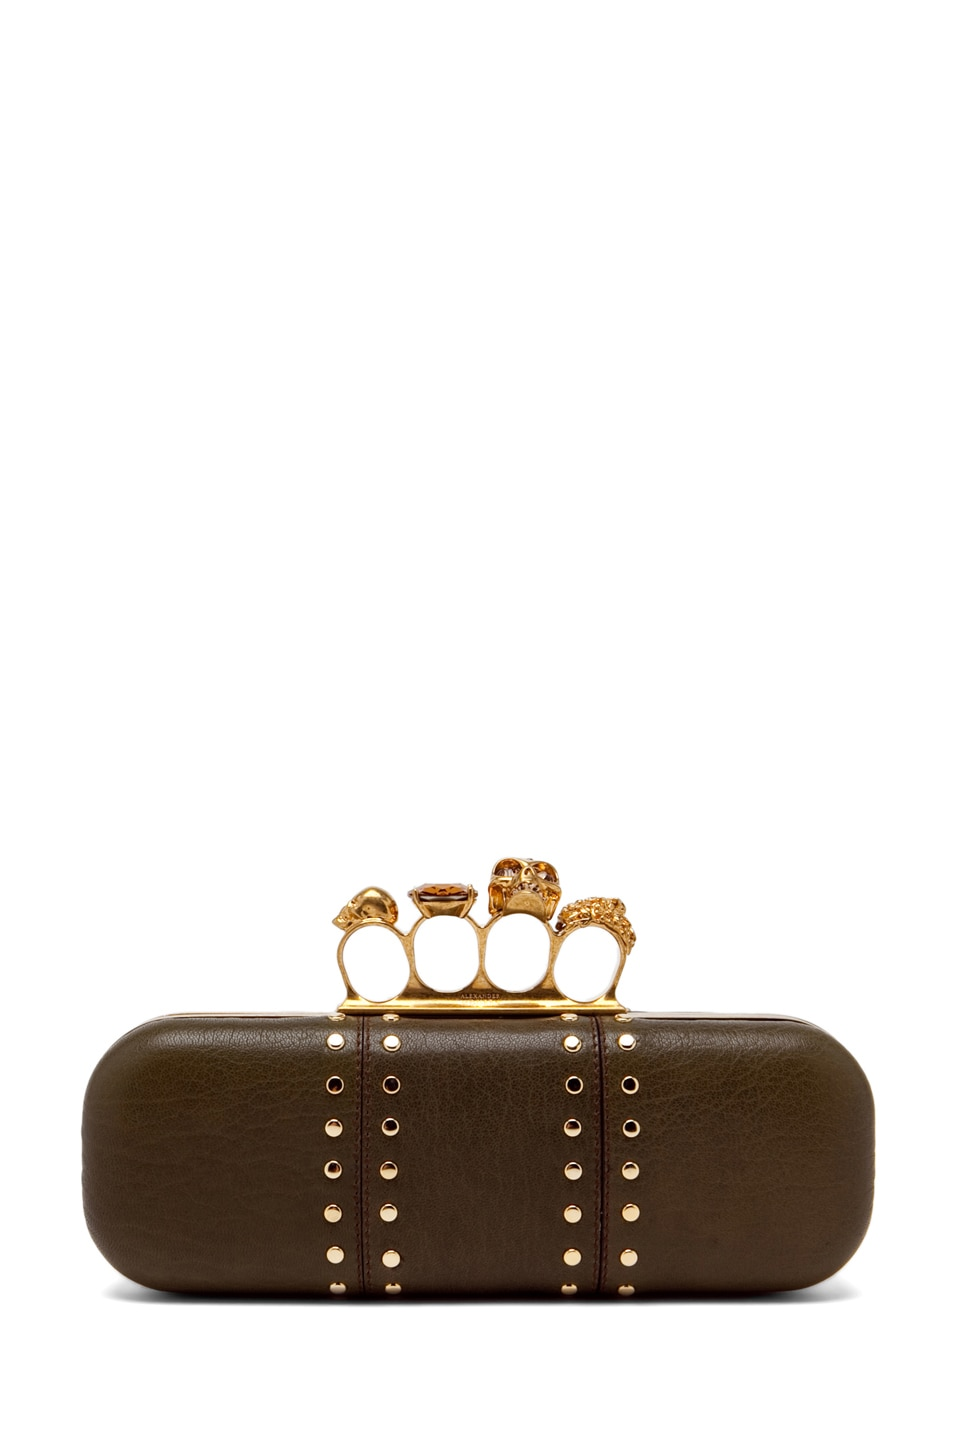 Image 1 of Alexander McQueen Knuckle Box Clutch in Olive Green